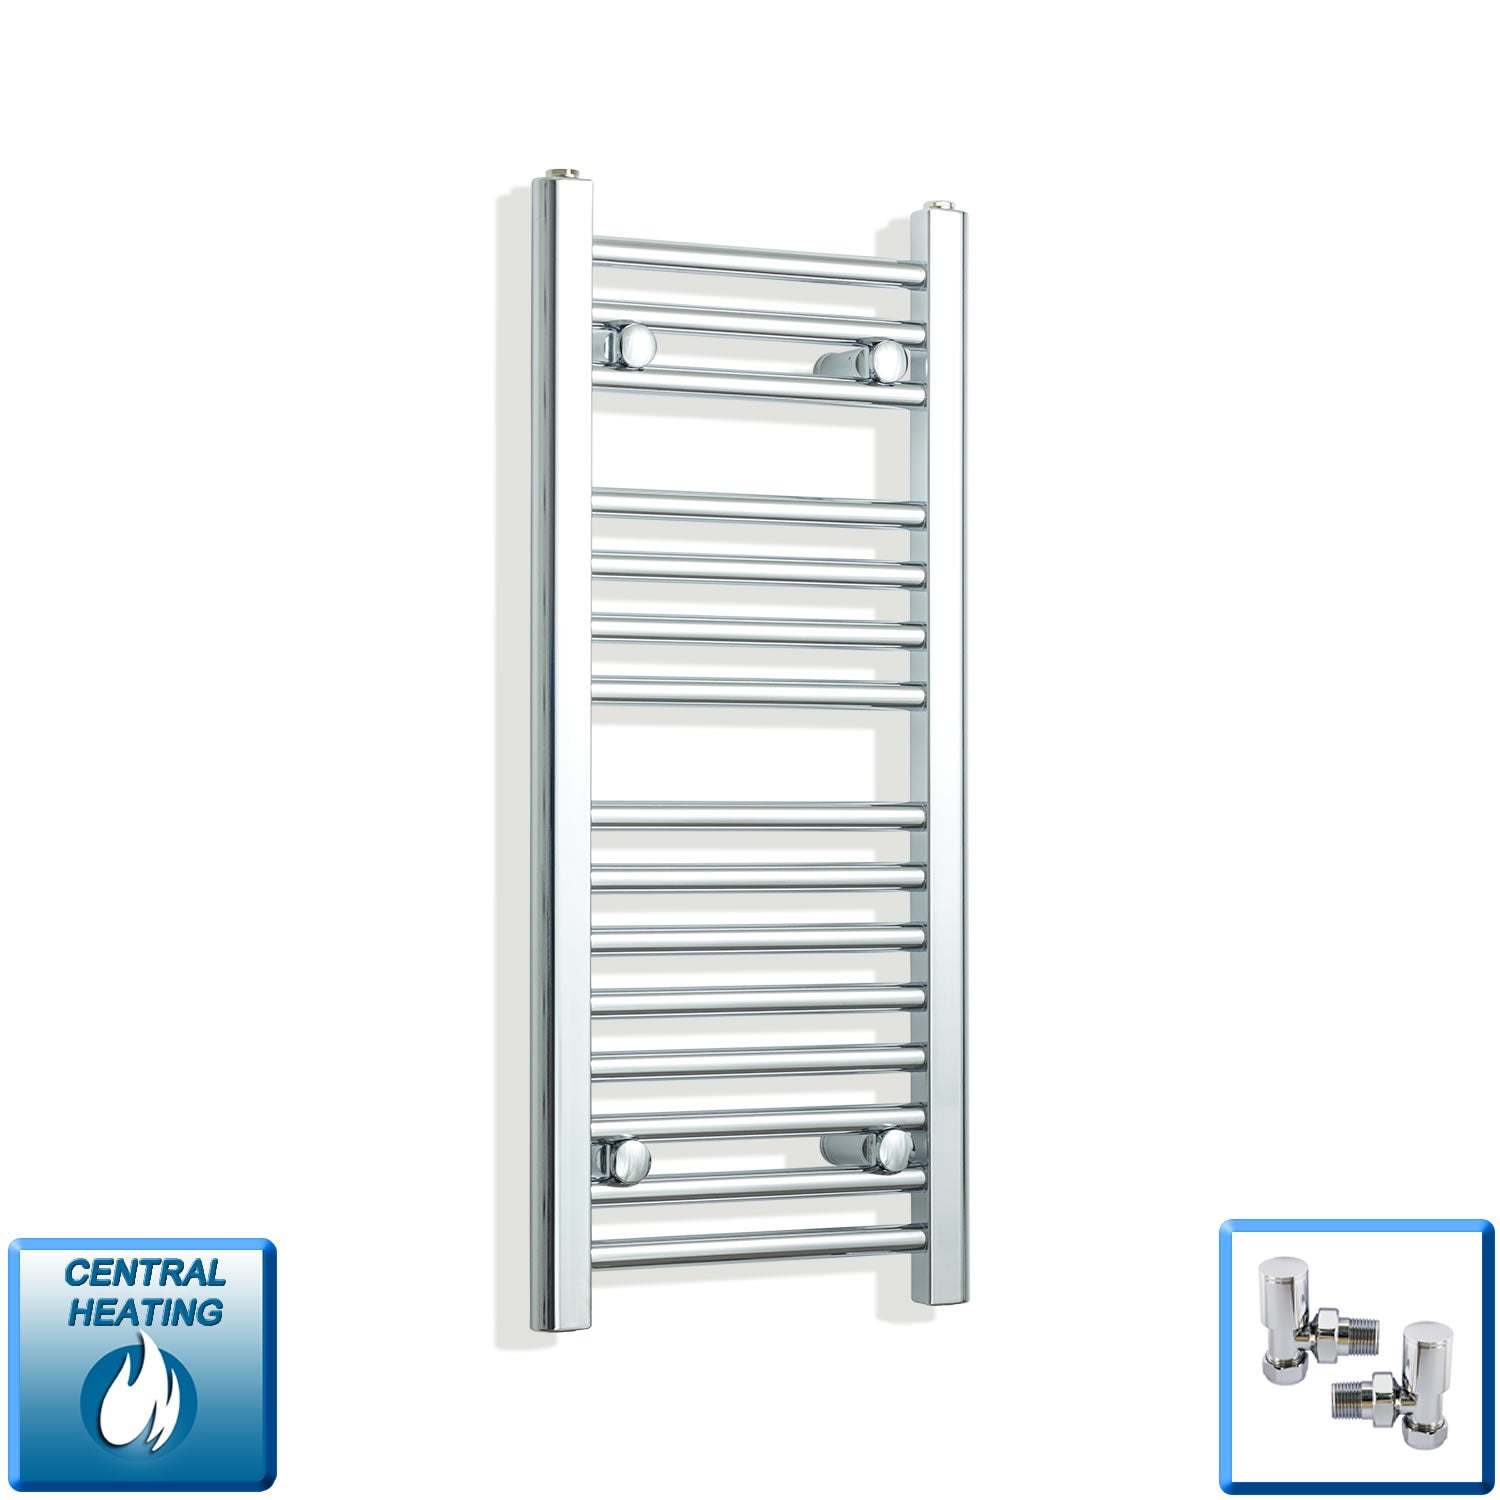 300mm Wide 800mm High Chrome Towel Rail Radiator With Angled Valve